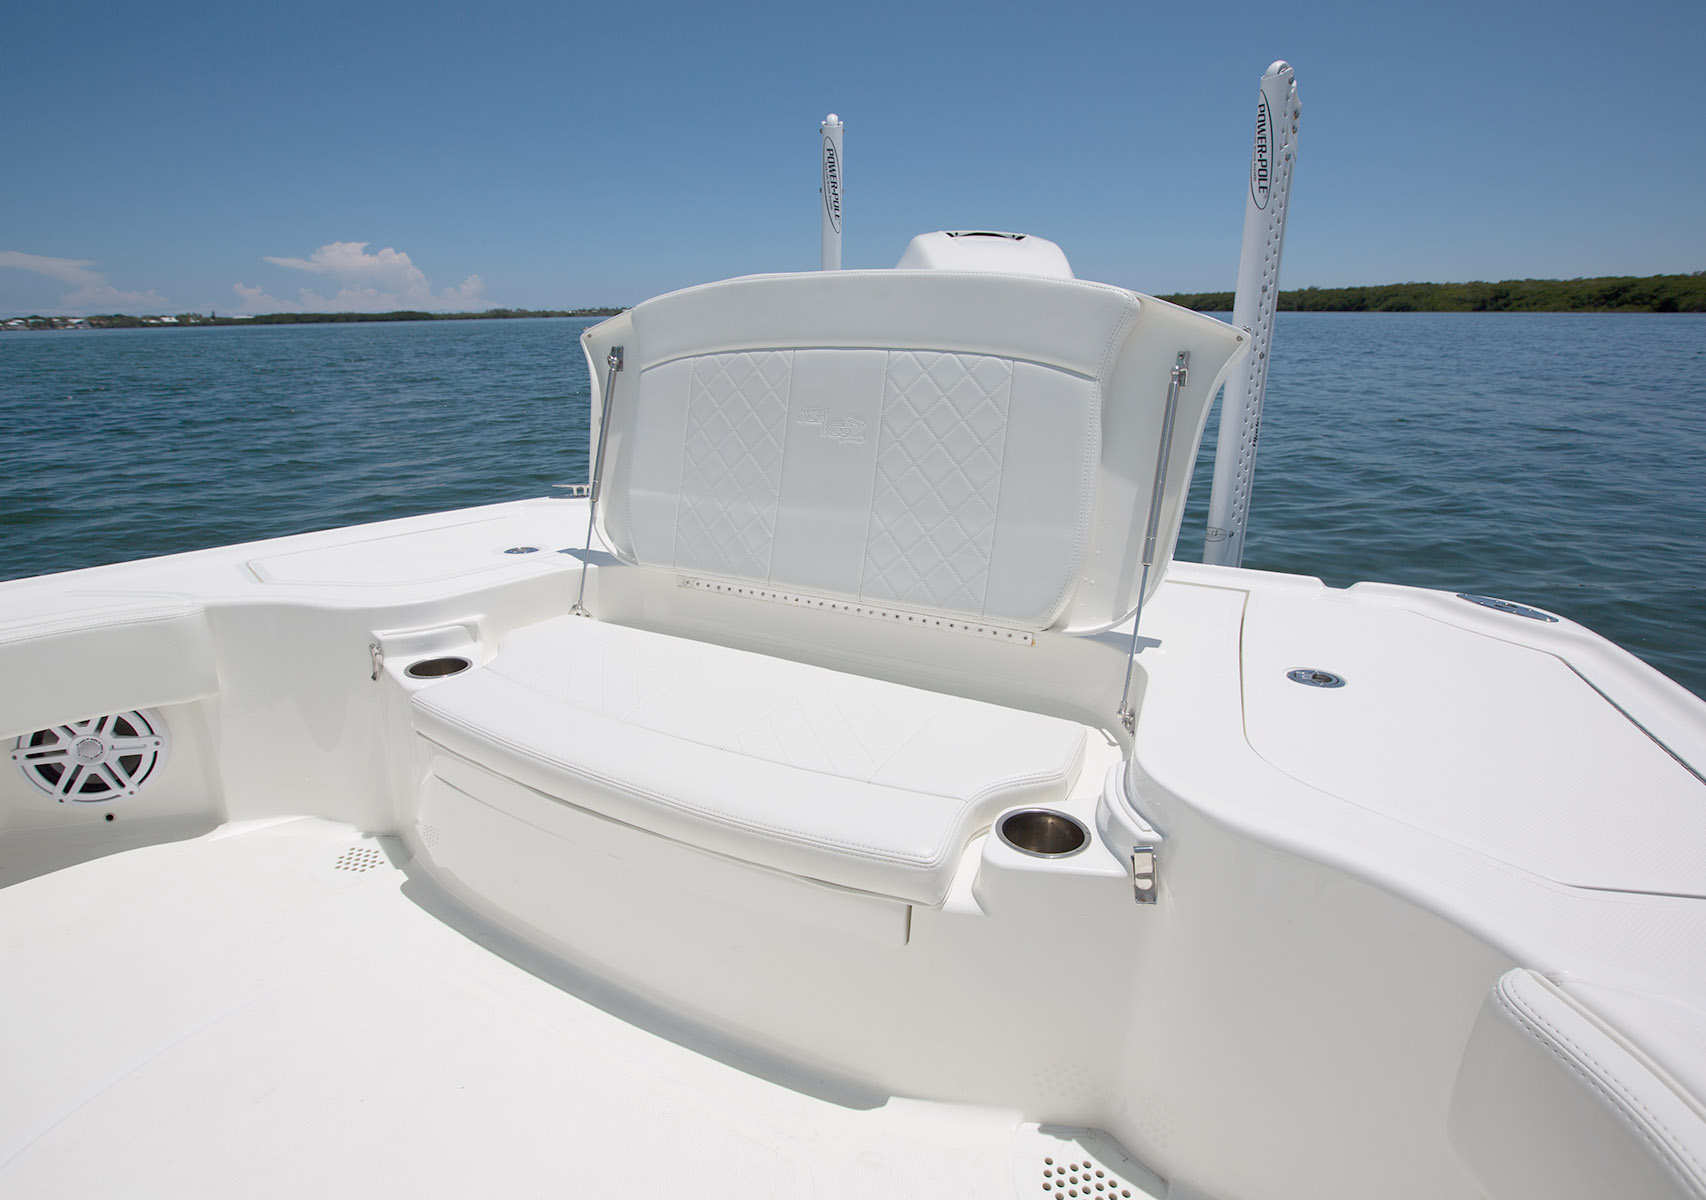 Storage Optional Fish Boxes Or Release Wells Aft Center